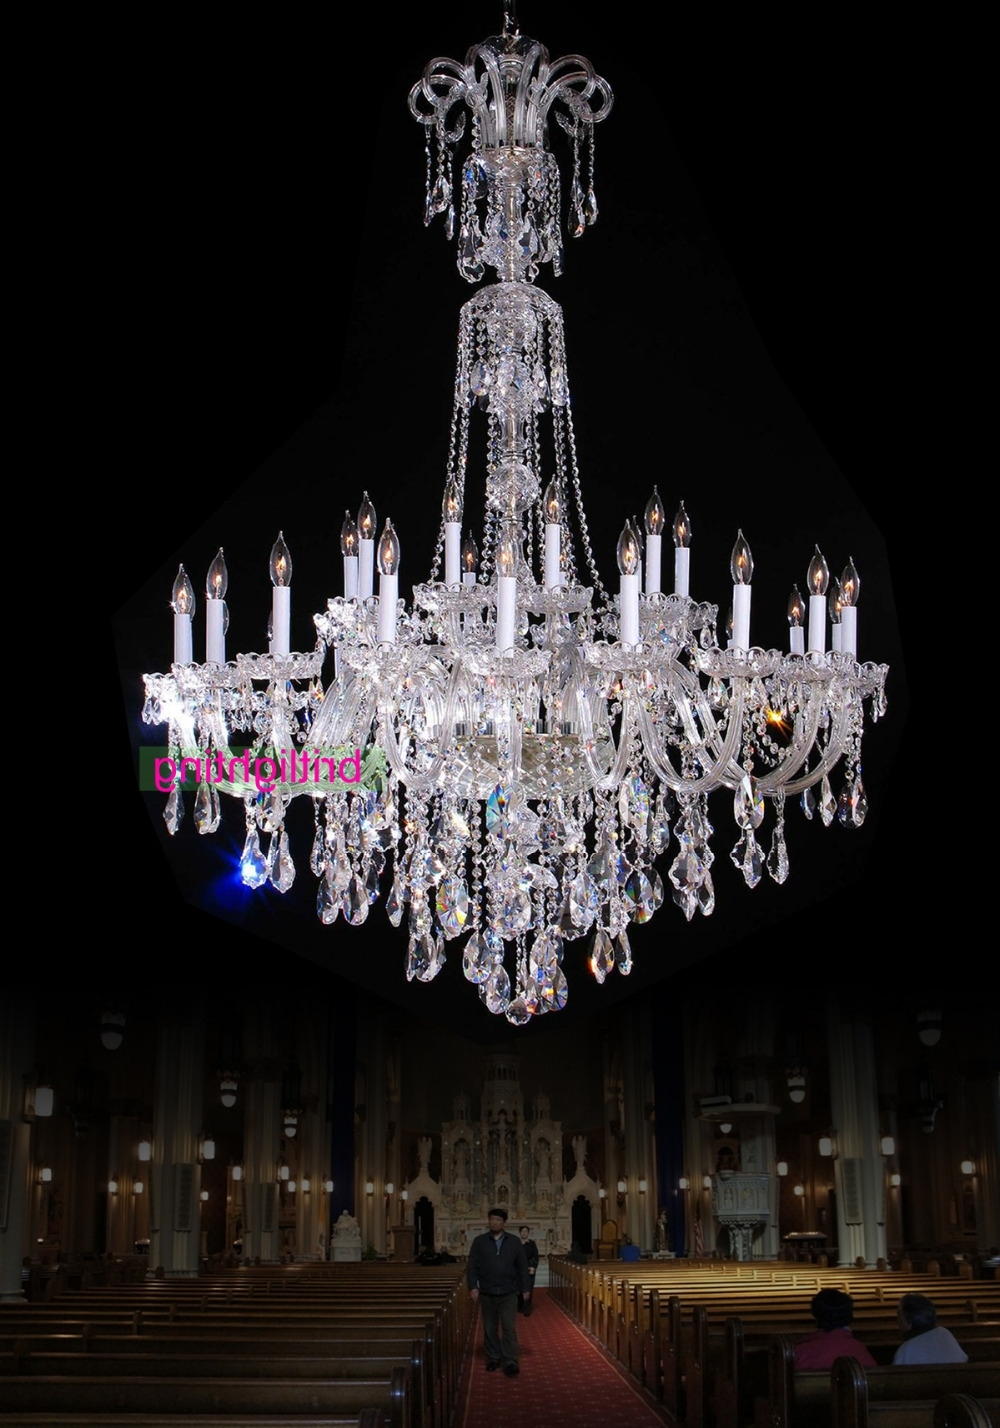 Large Chandelier With Crystal Pendants Big Lamp For Hotel Extra With Regard To Current Extra Large Chandelier Lighting (View 12 of 20)